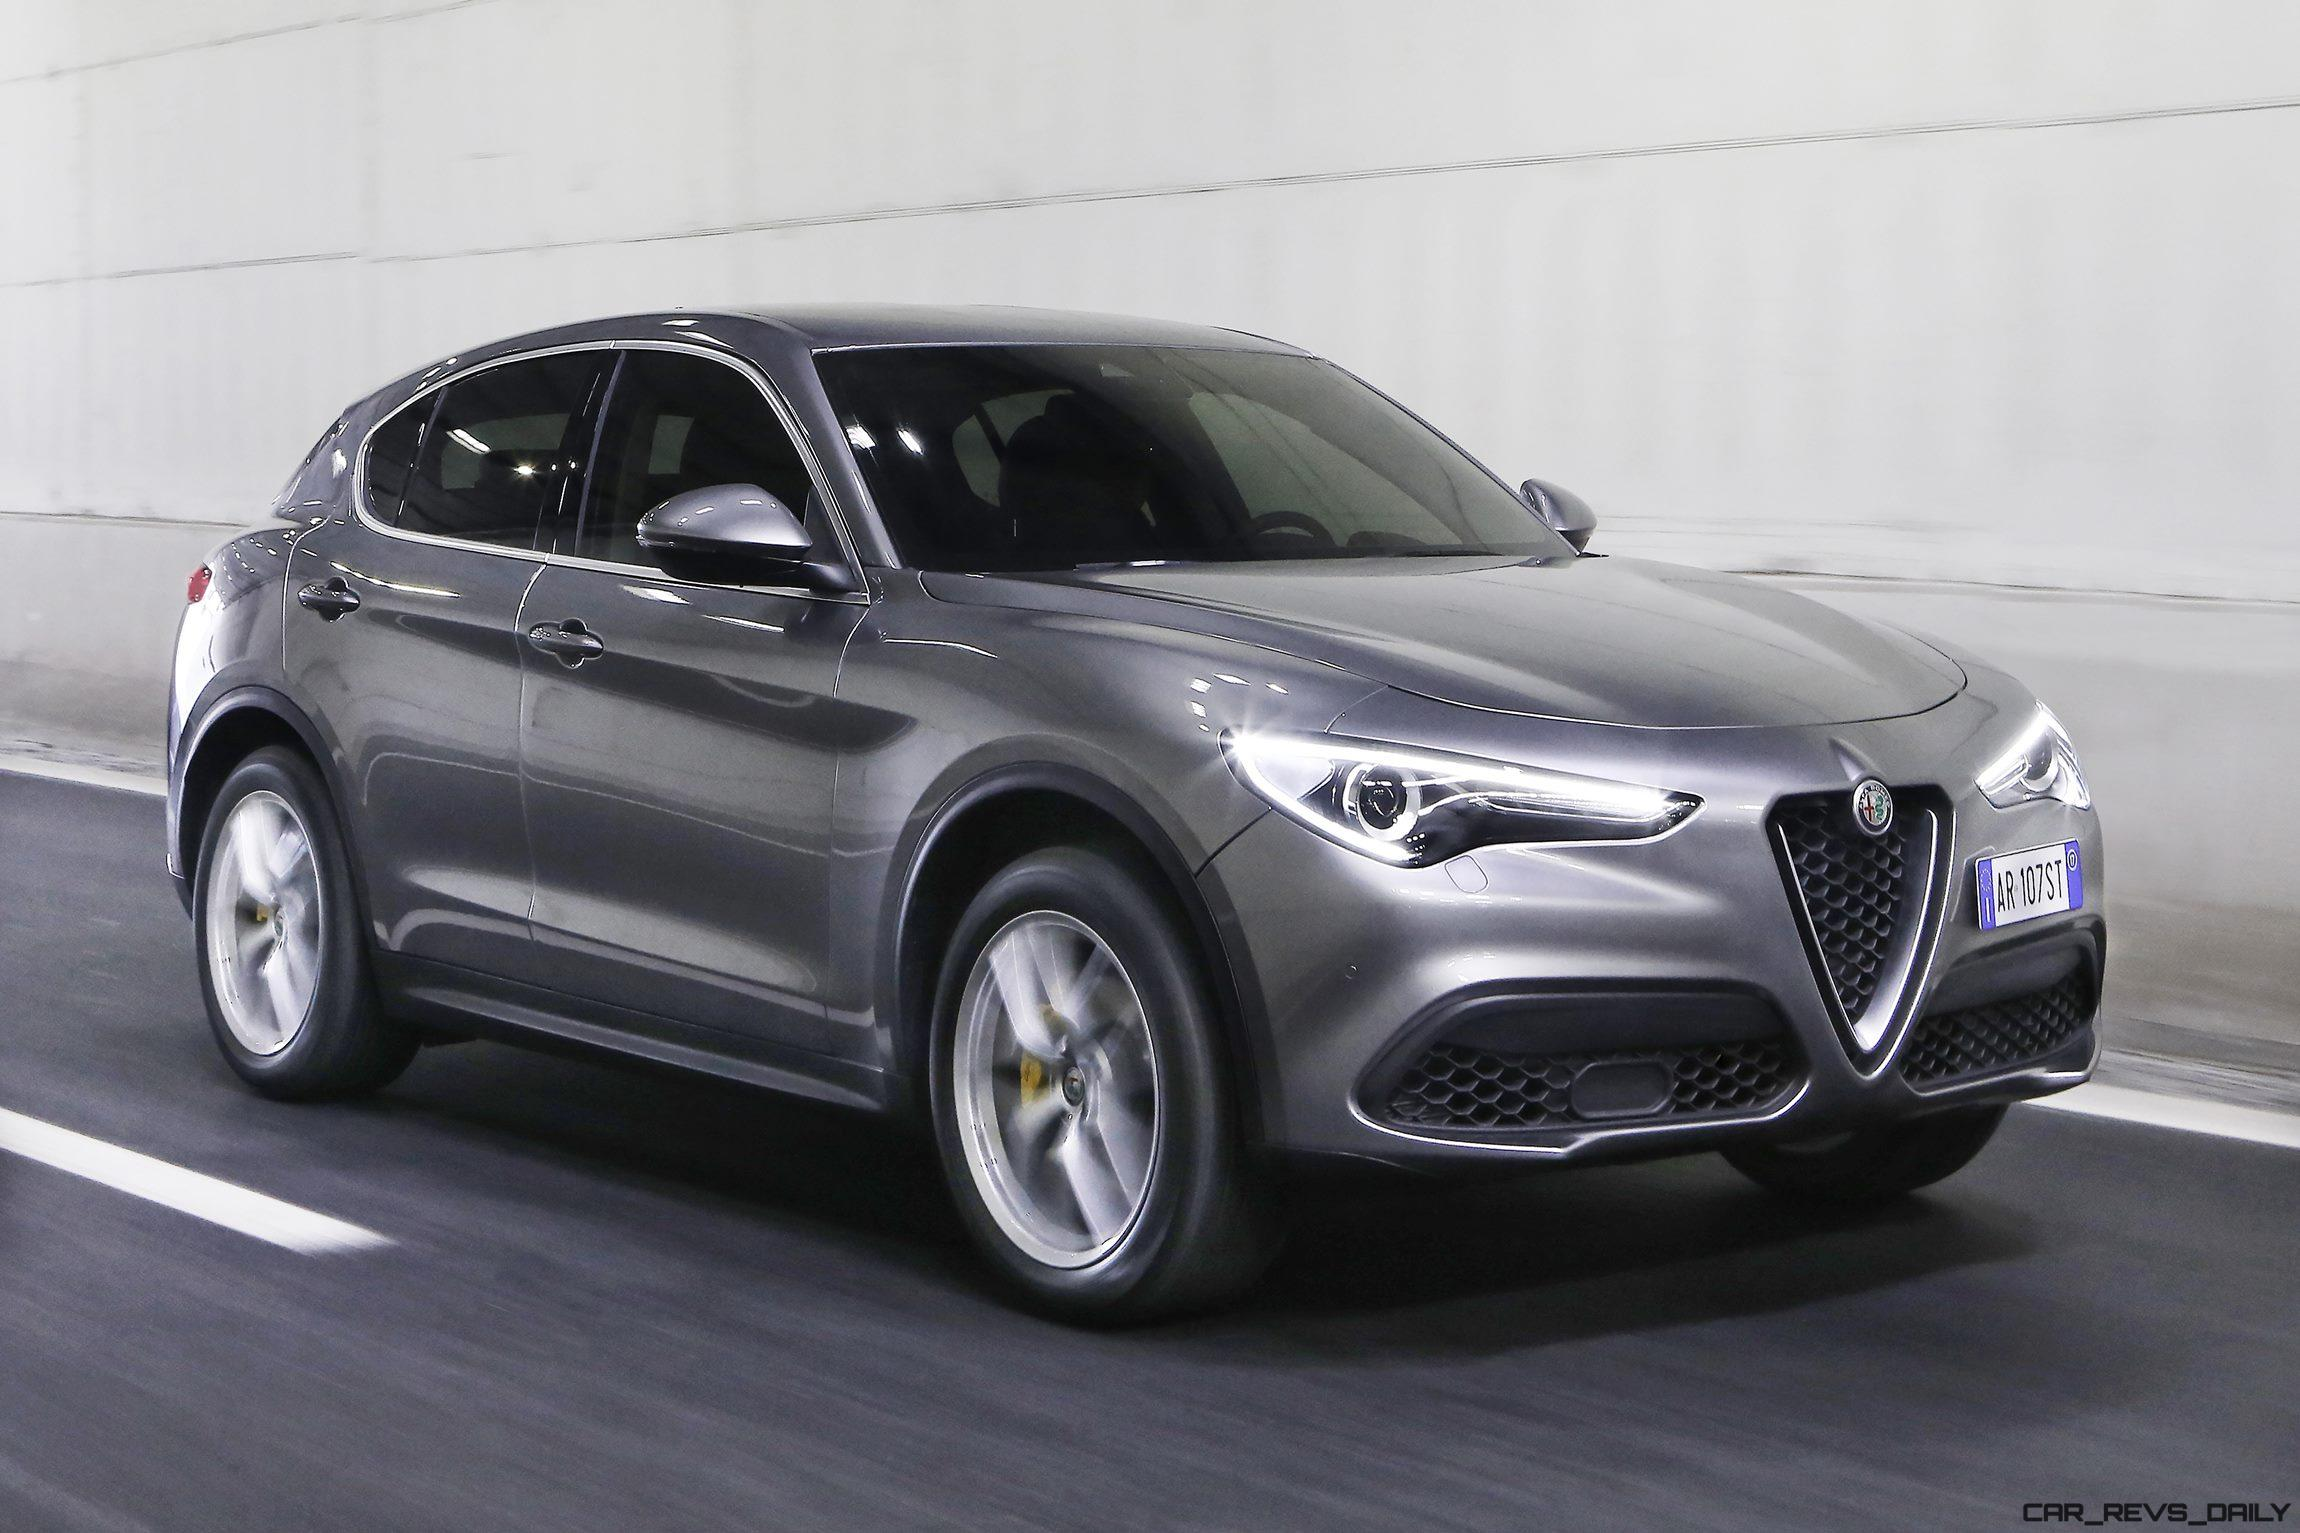 2018 Alfa Romeo Stelvio 70 Dynamic Pics On Namesake Road Rear Axle